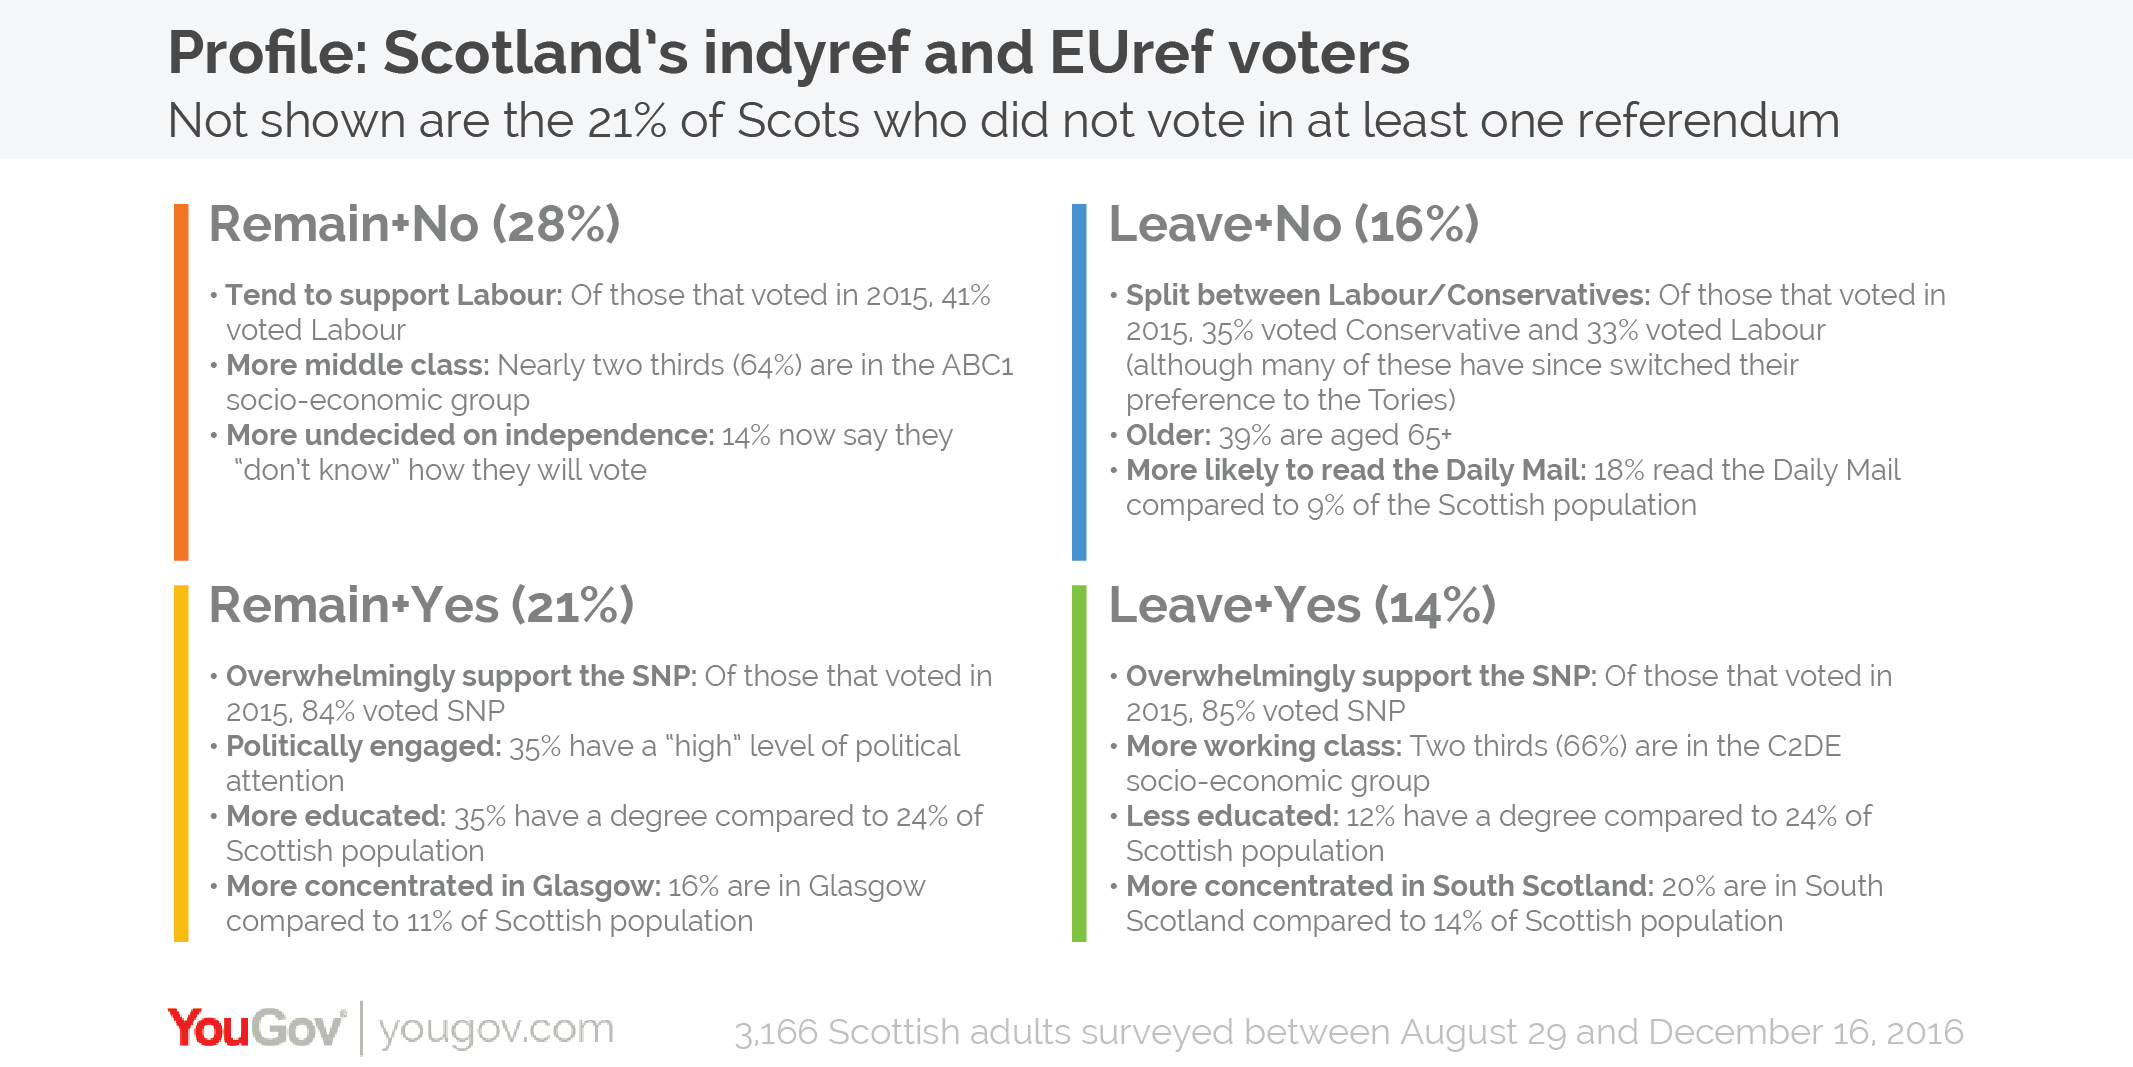 Why have the polls not shown a shift towards Scottish